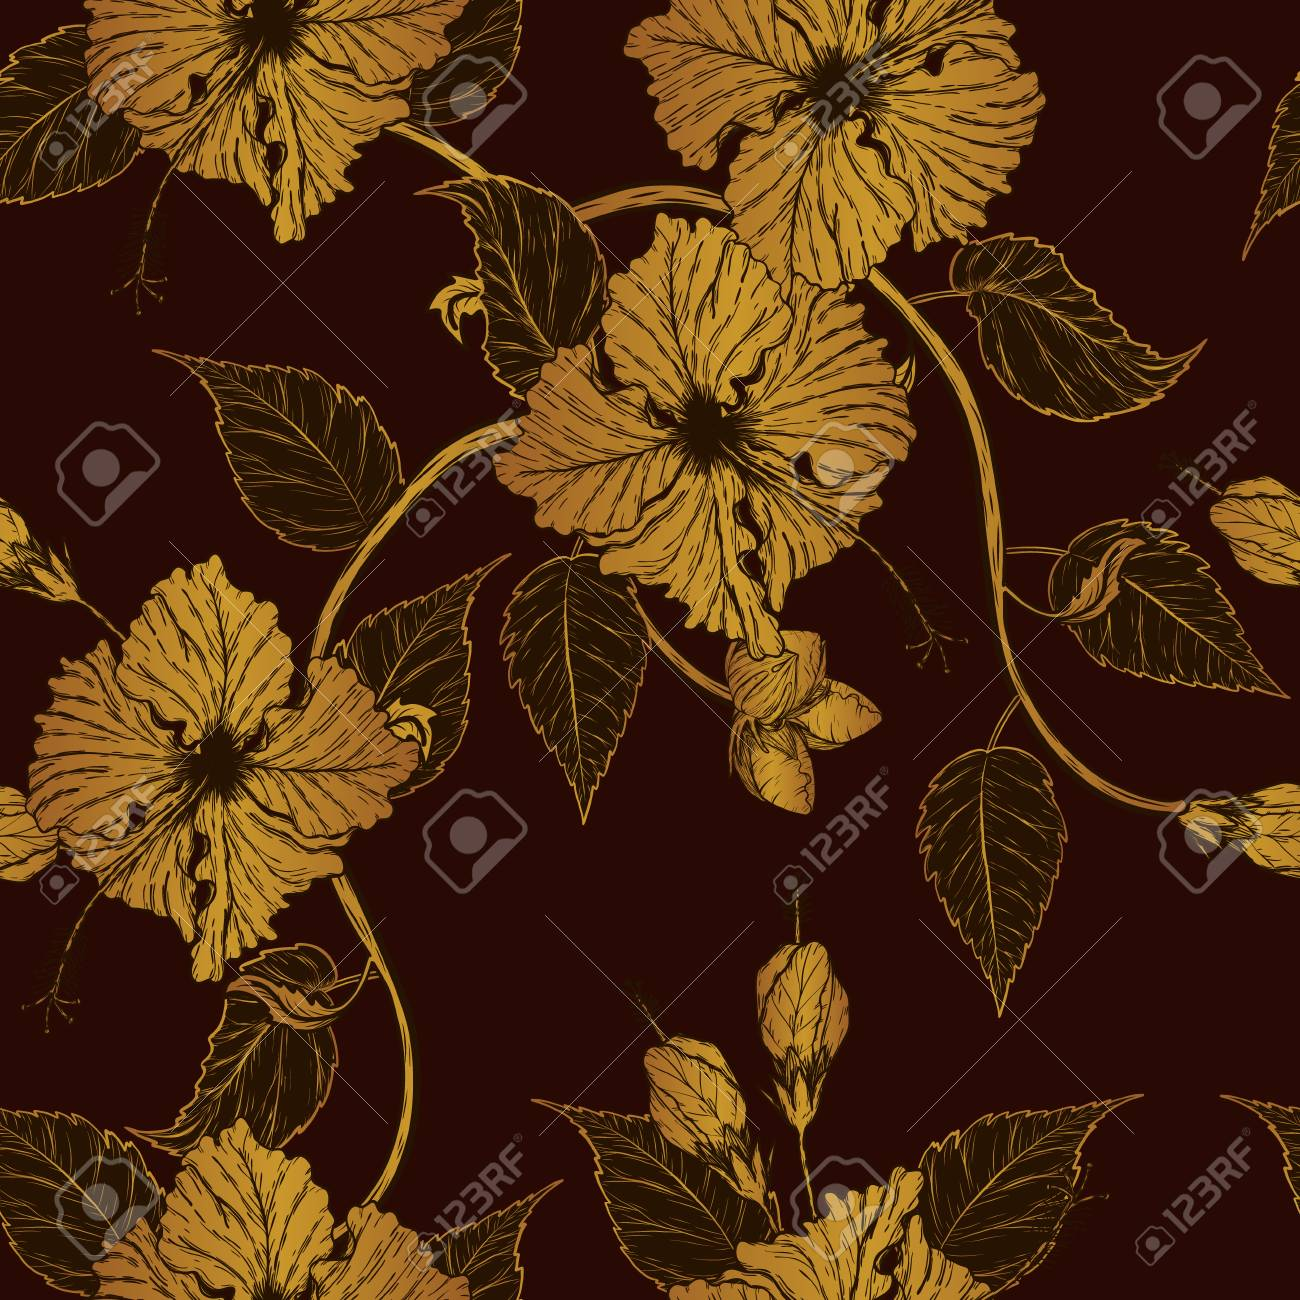 Hibiscus Flower Pattern By Hand Drawing Tattoo Art Highly Detailed Royalty Free Cliparts Vectors And Stock Illustration Image 96658979